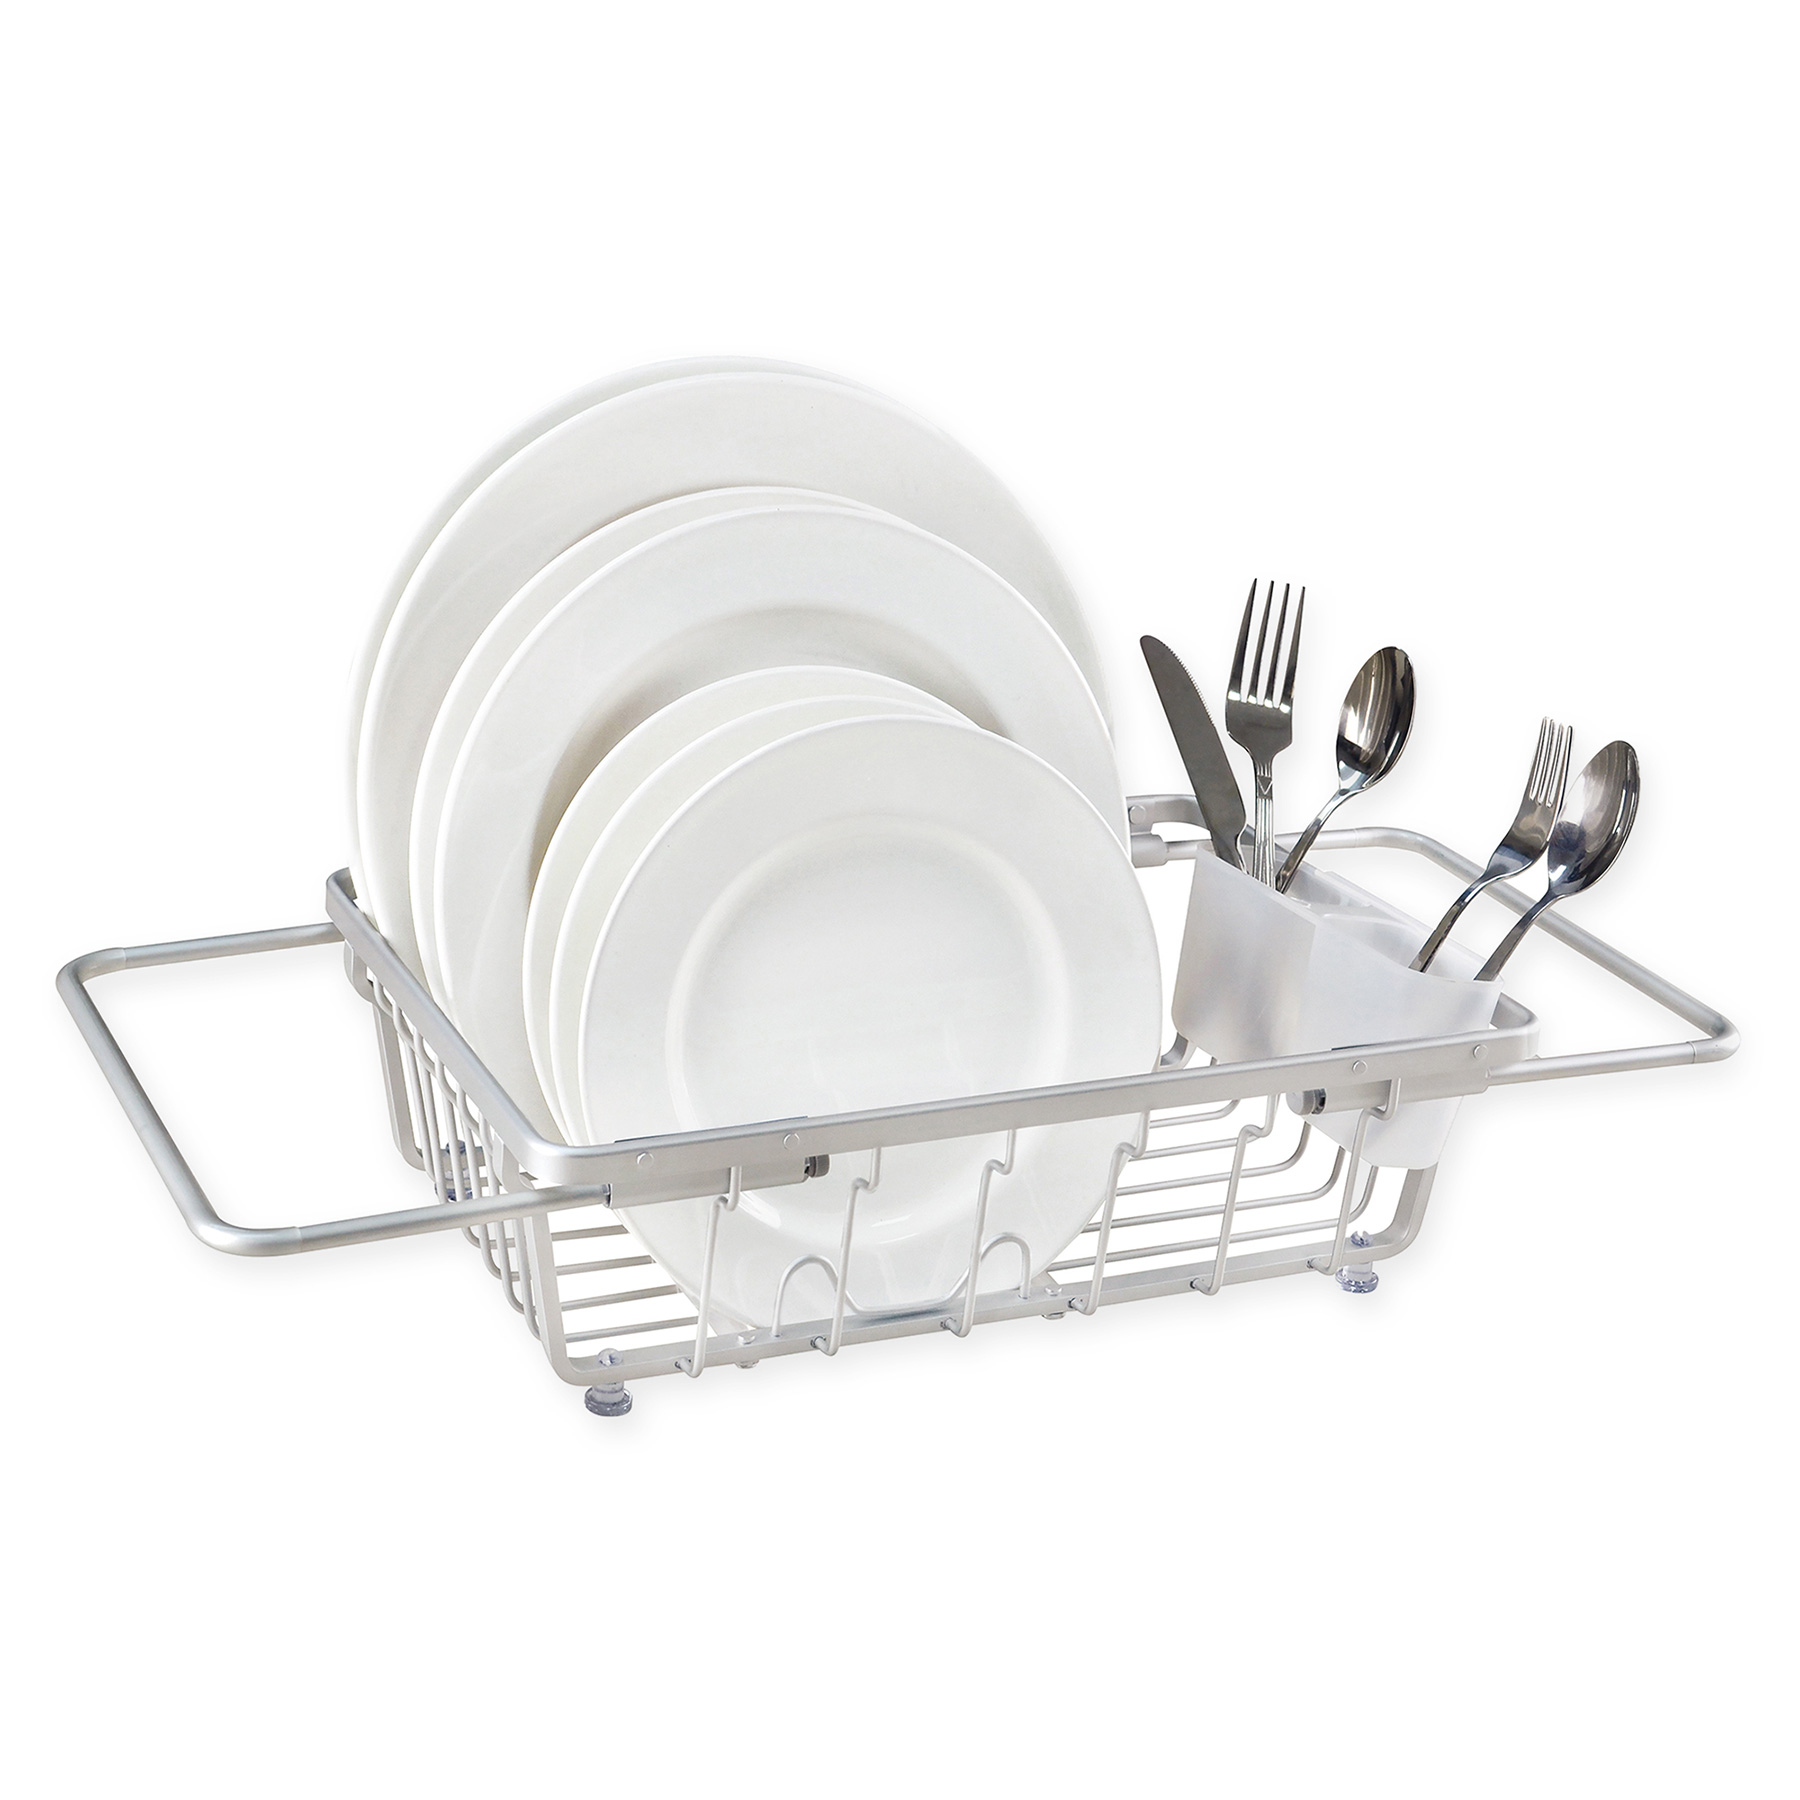 Tiny Home Interior Organizing Products: ORG Aluminum Expandable Over-the-Sink Dish Rack